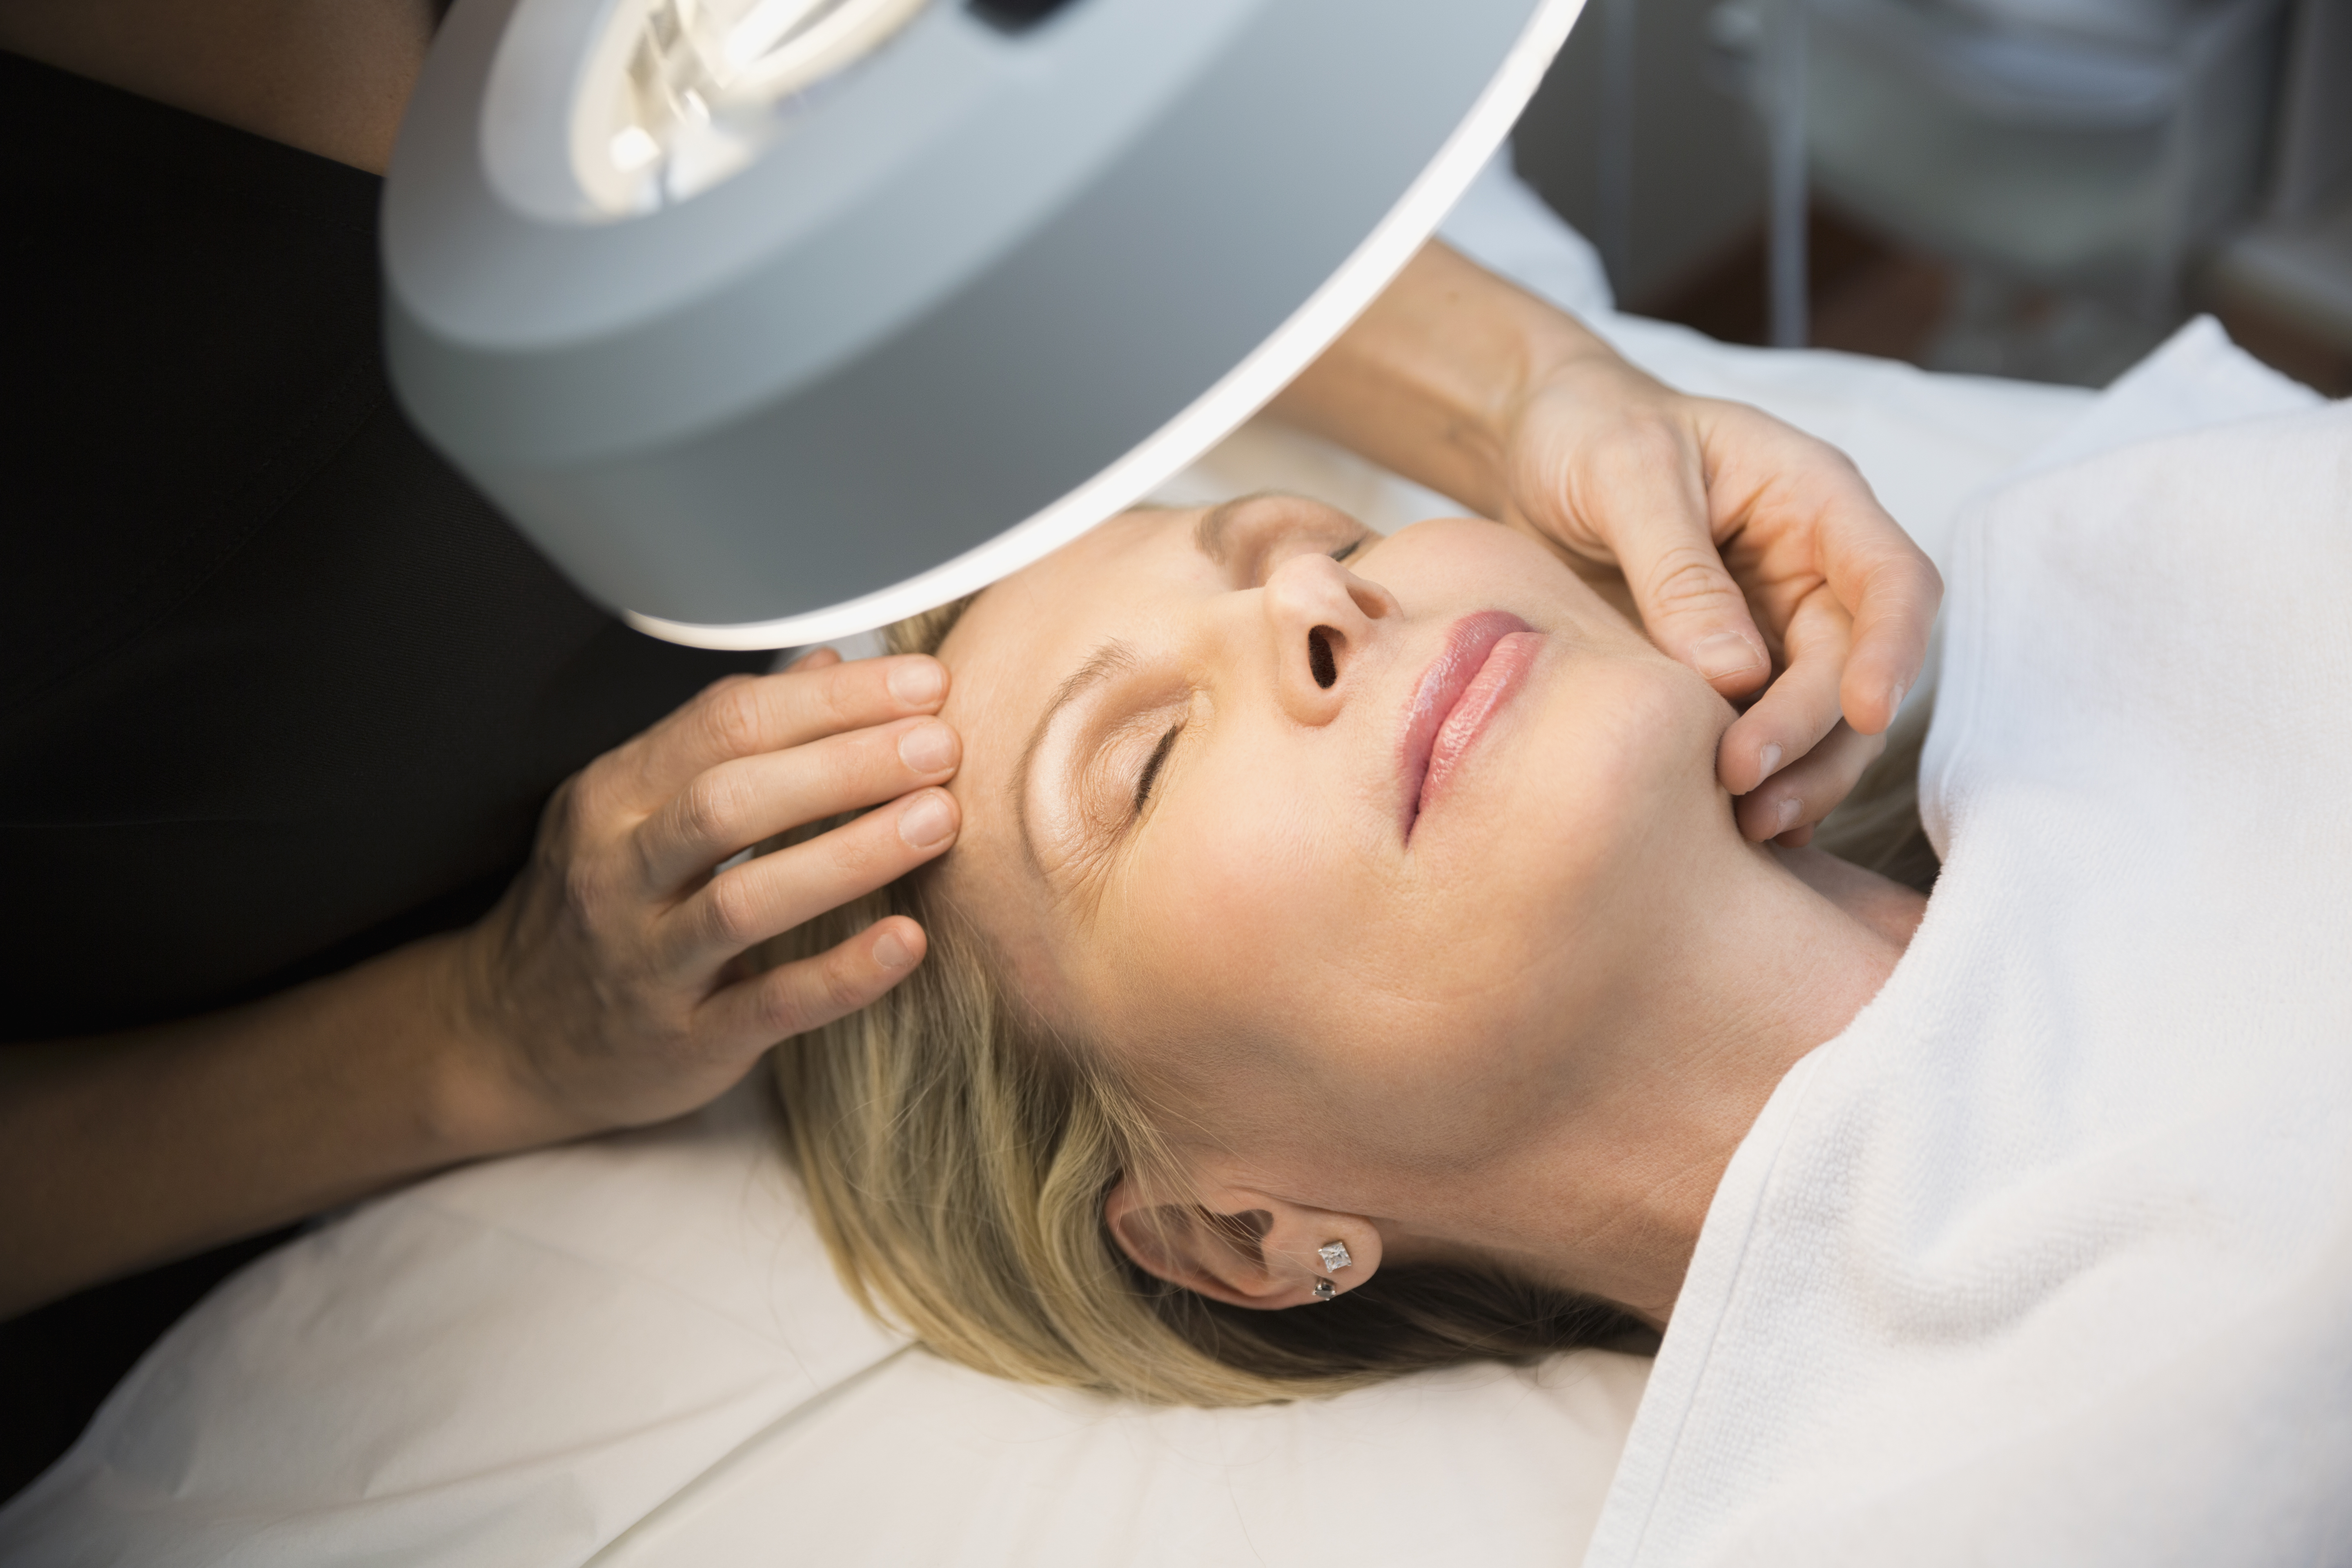 What Are the Duties of Medical Estheticians in a Plastic